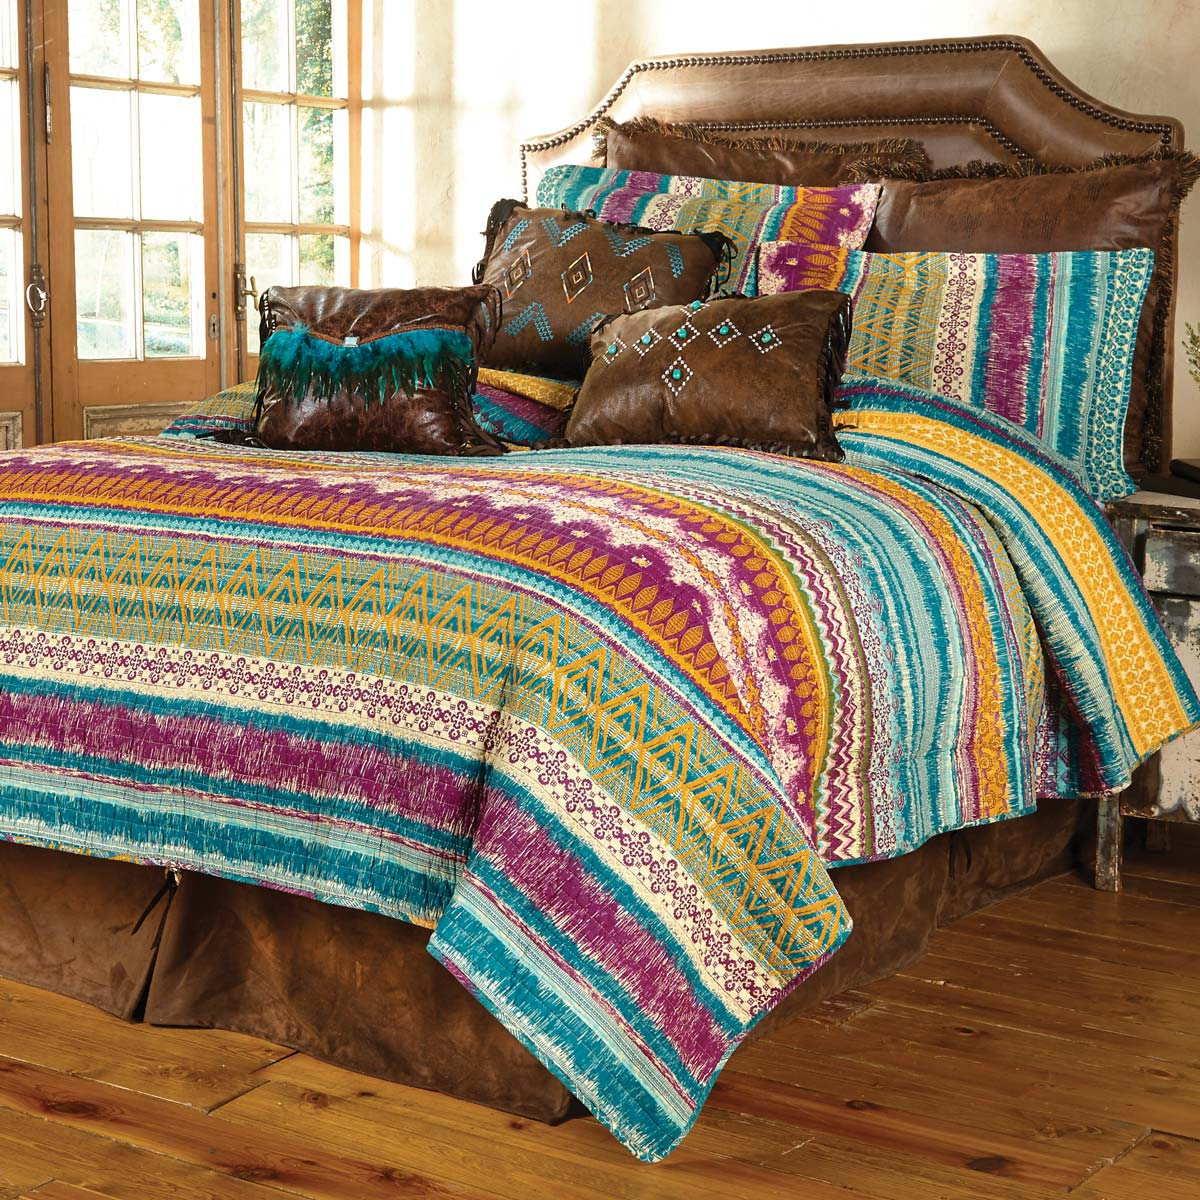 Fuchsia Tribal 3-Piece Quilt Set - Full/Queen